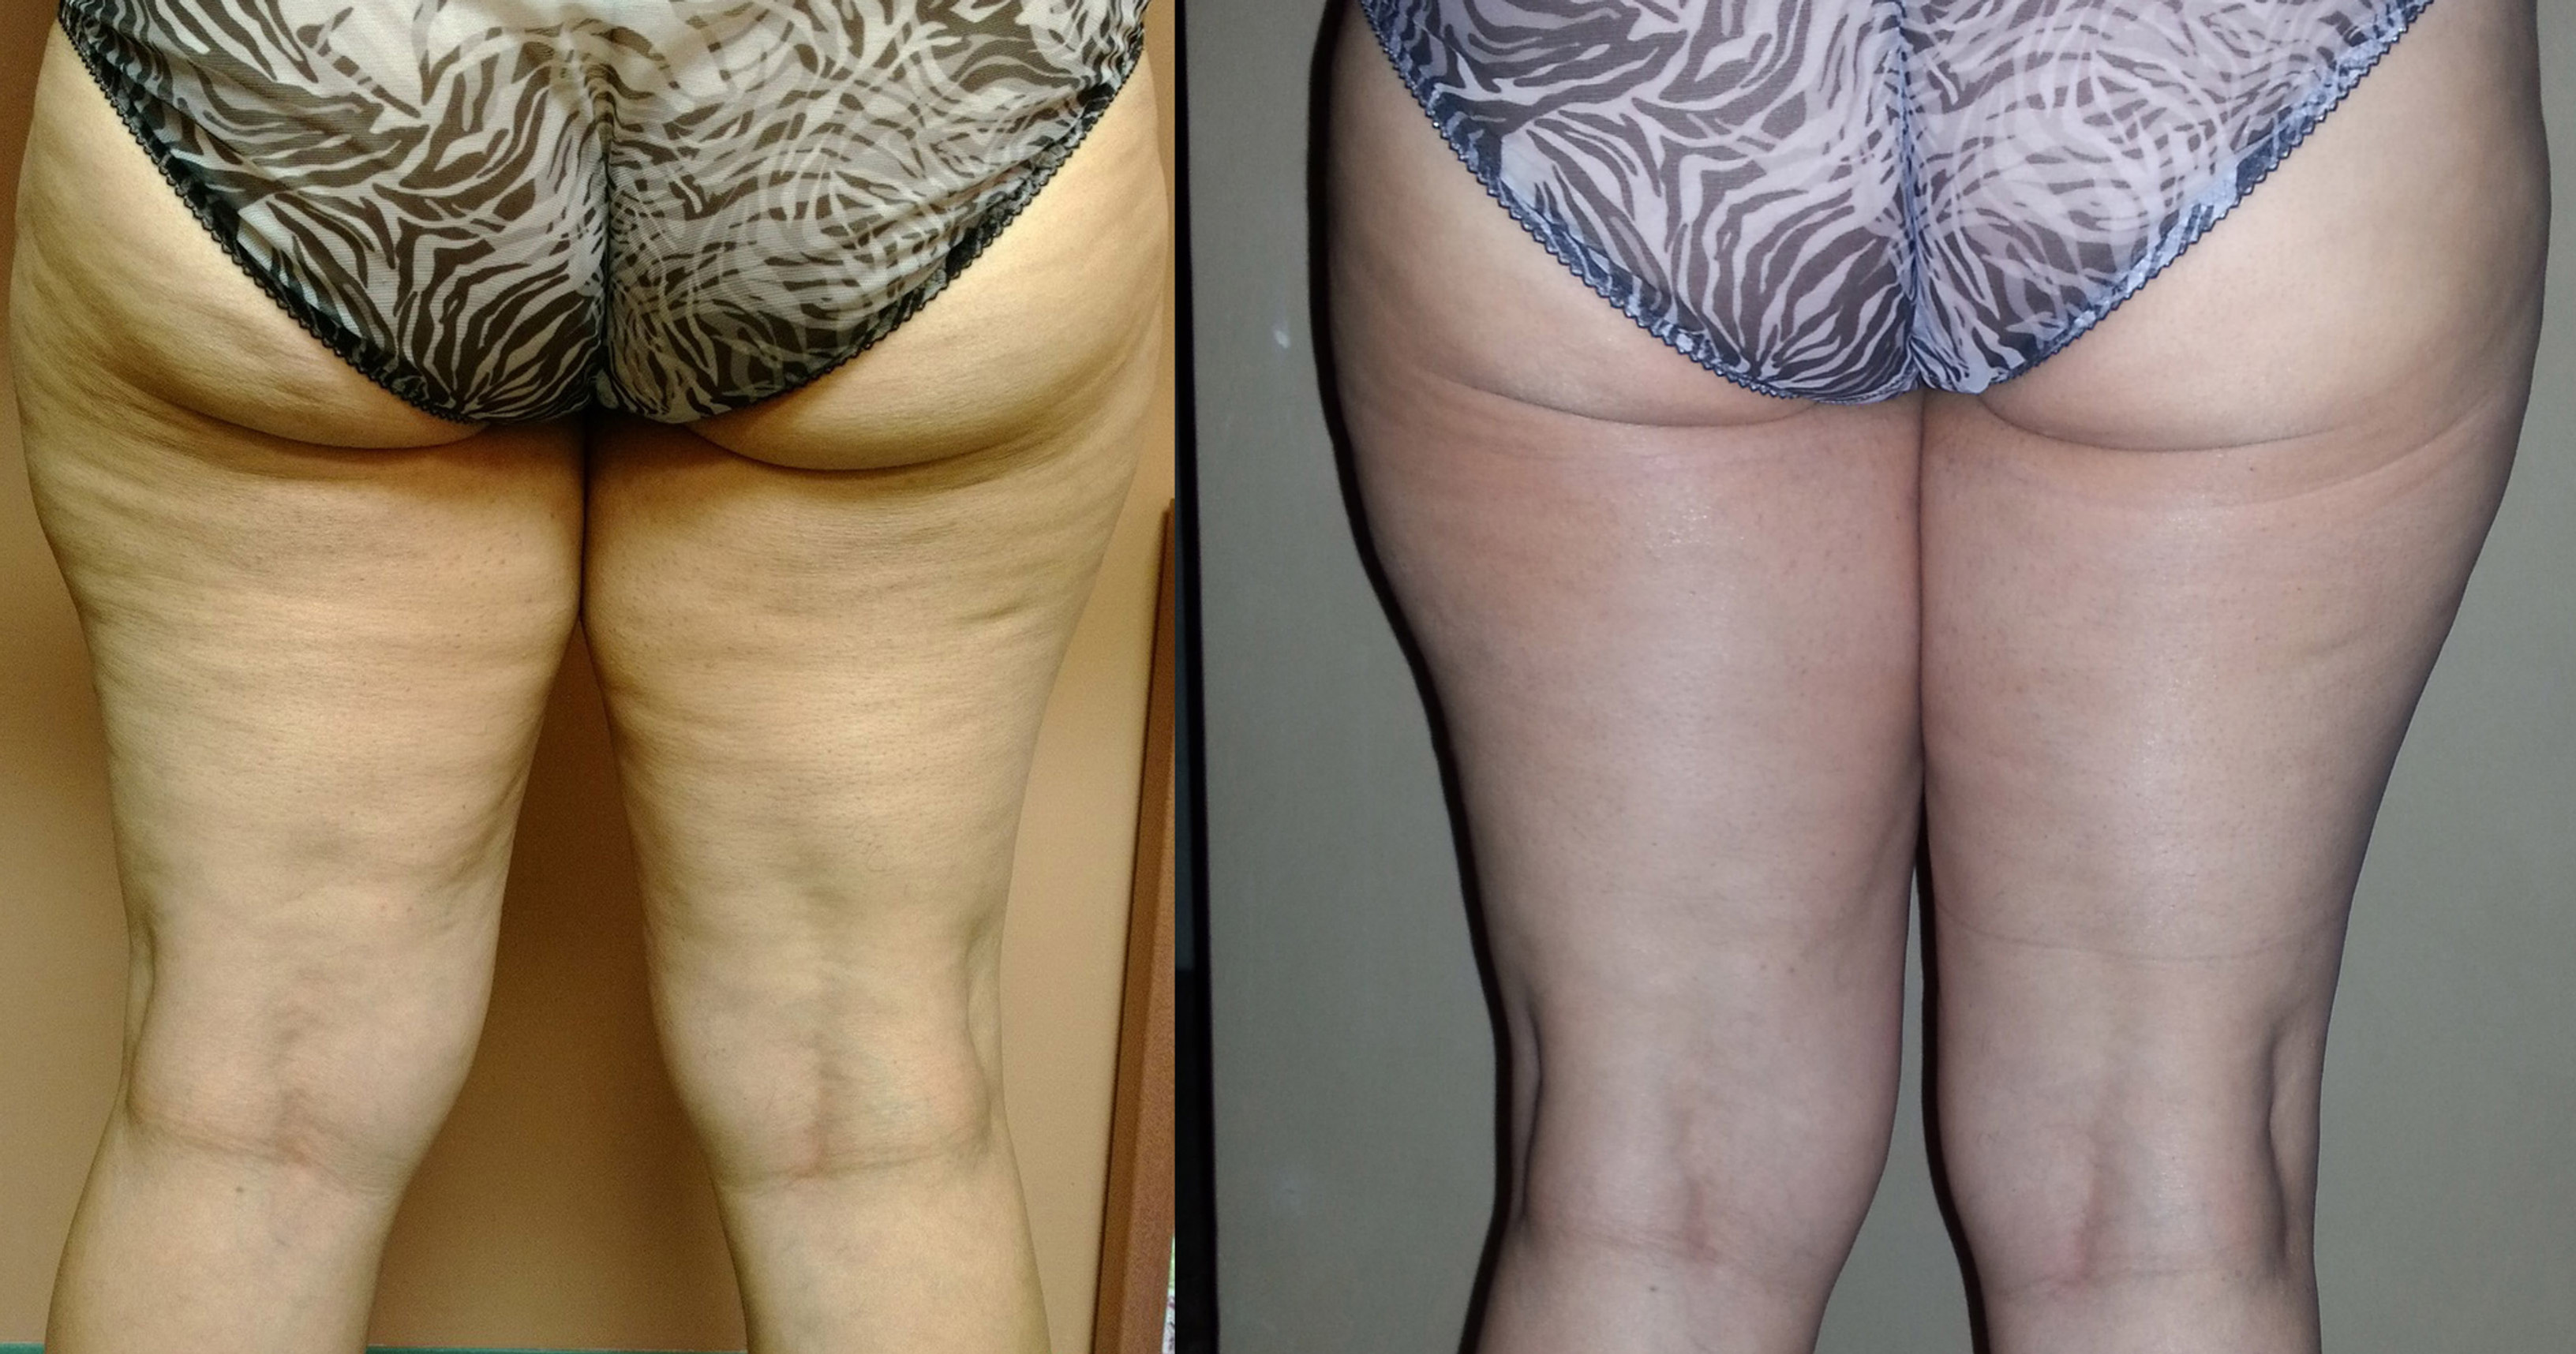 Cellulite Therapy (legs only)